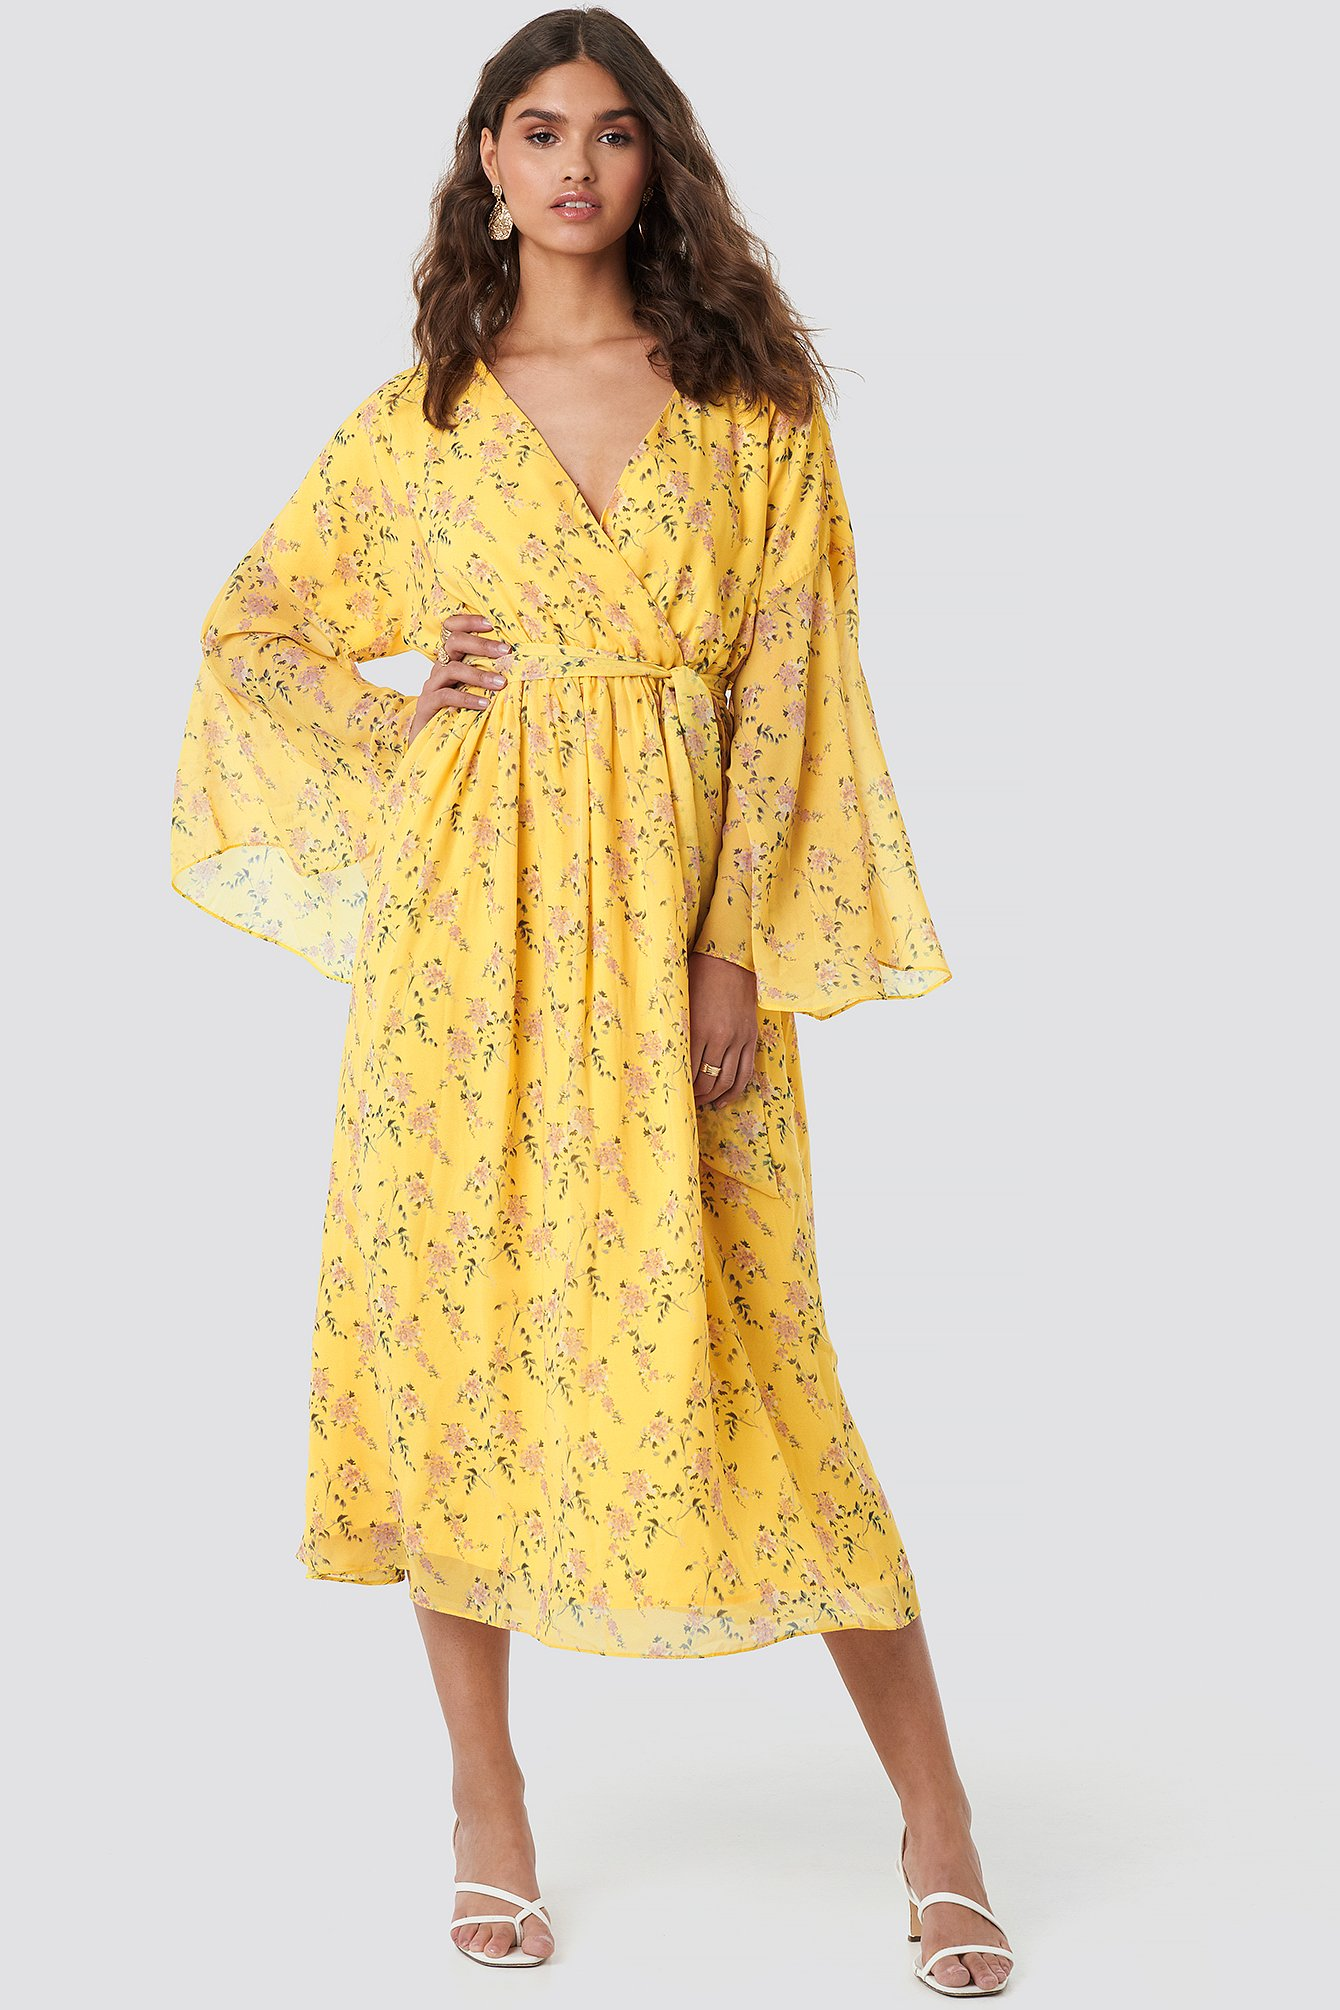 kae sutherland x na-kd -  Big Sleeve Belted Maxi Dress - Yellow